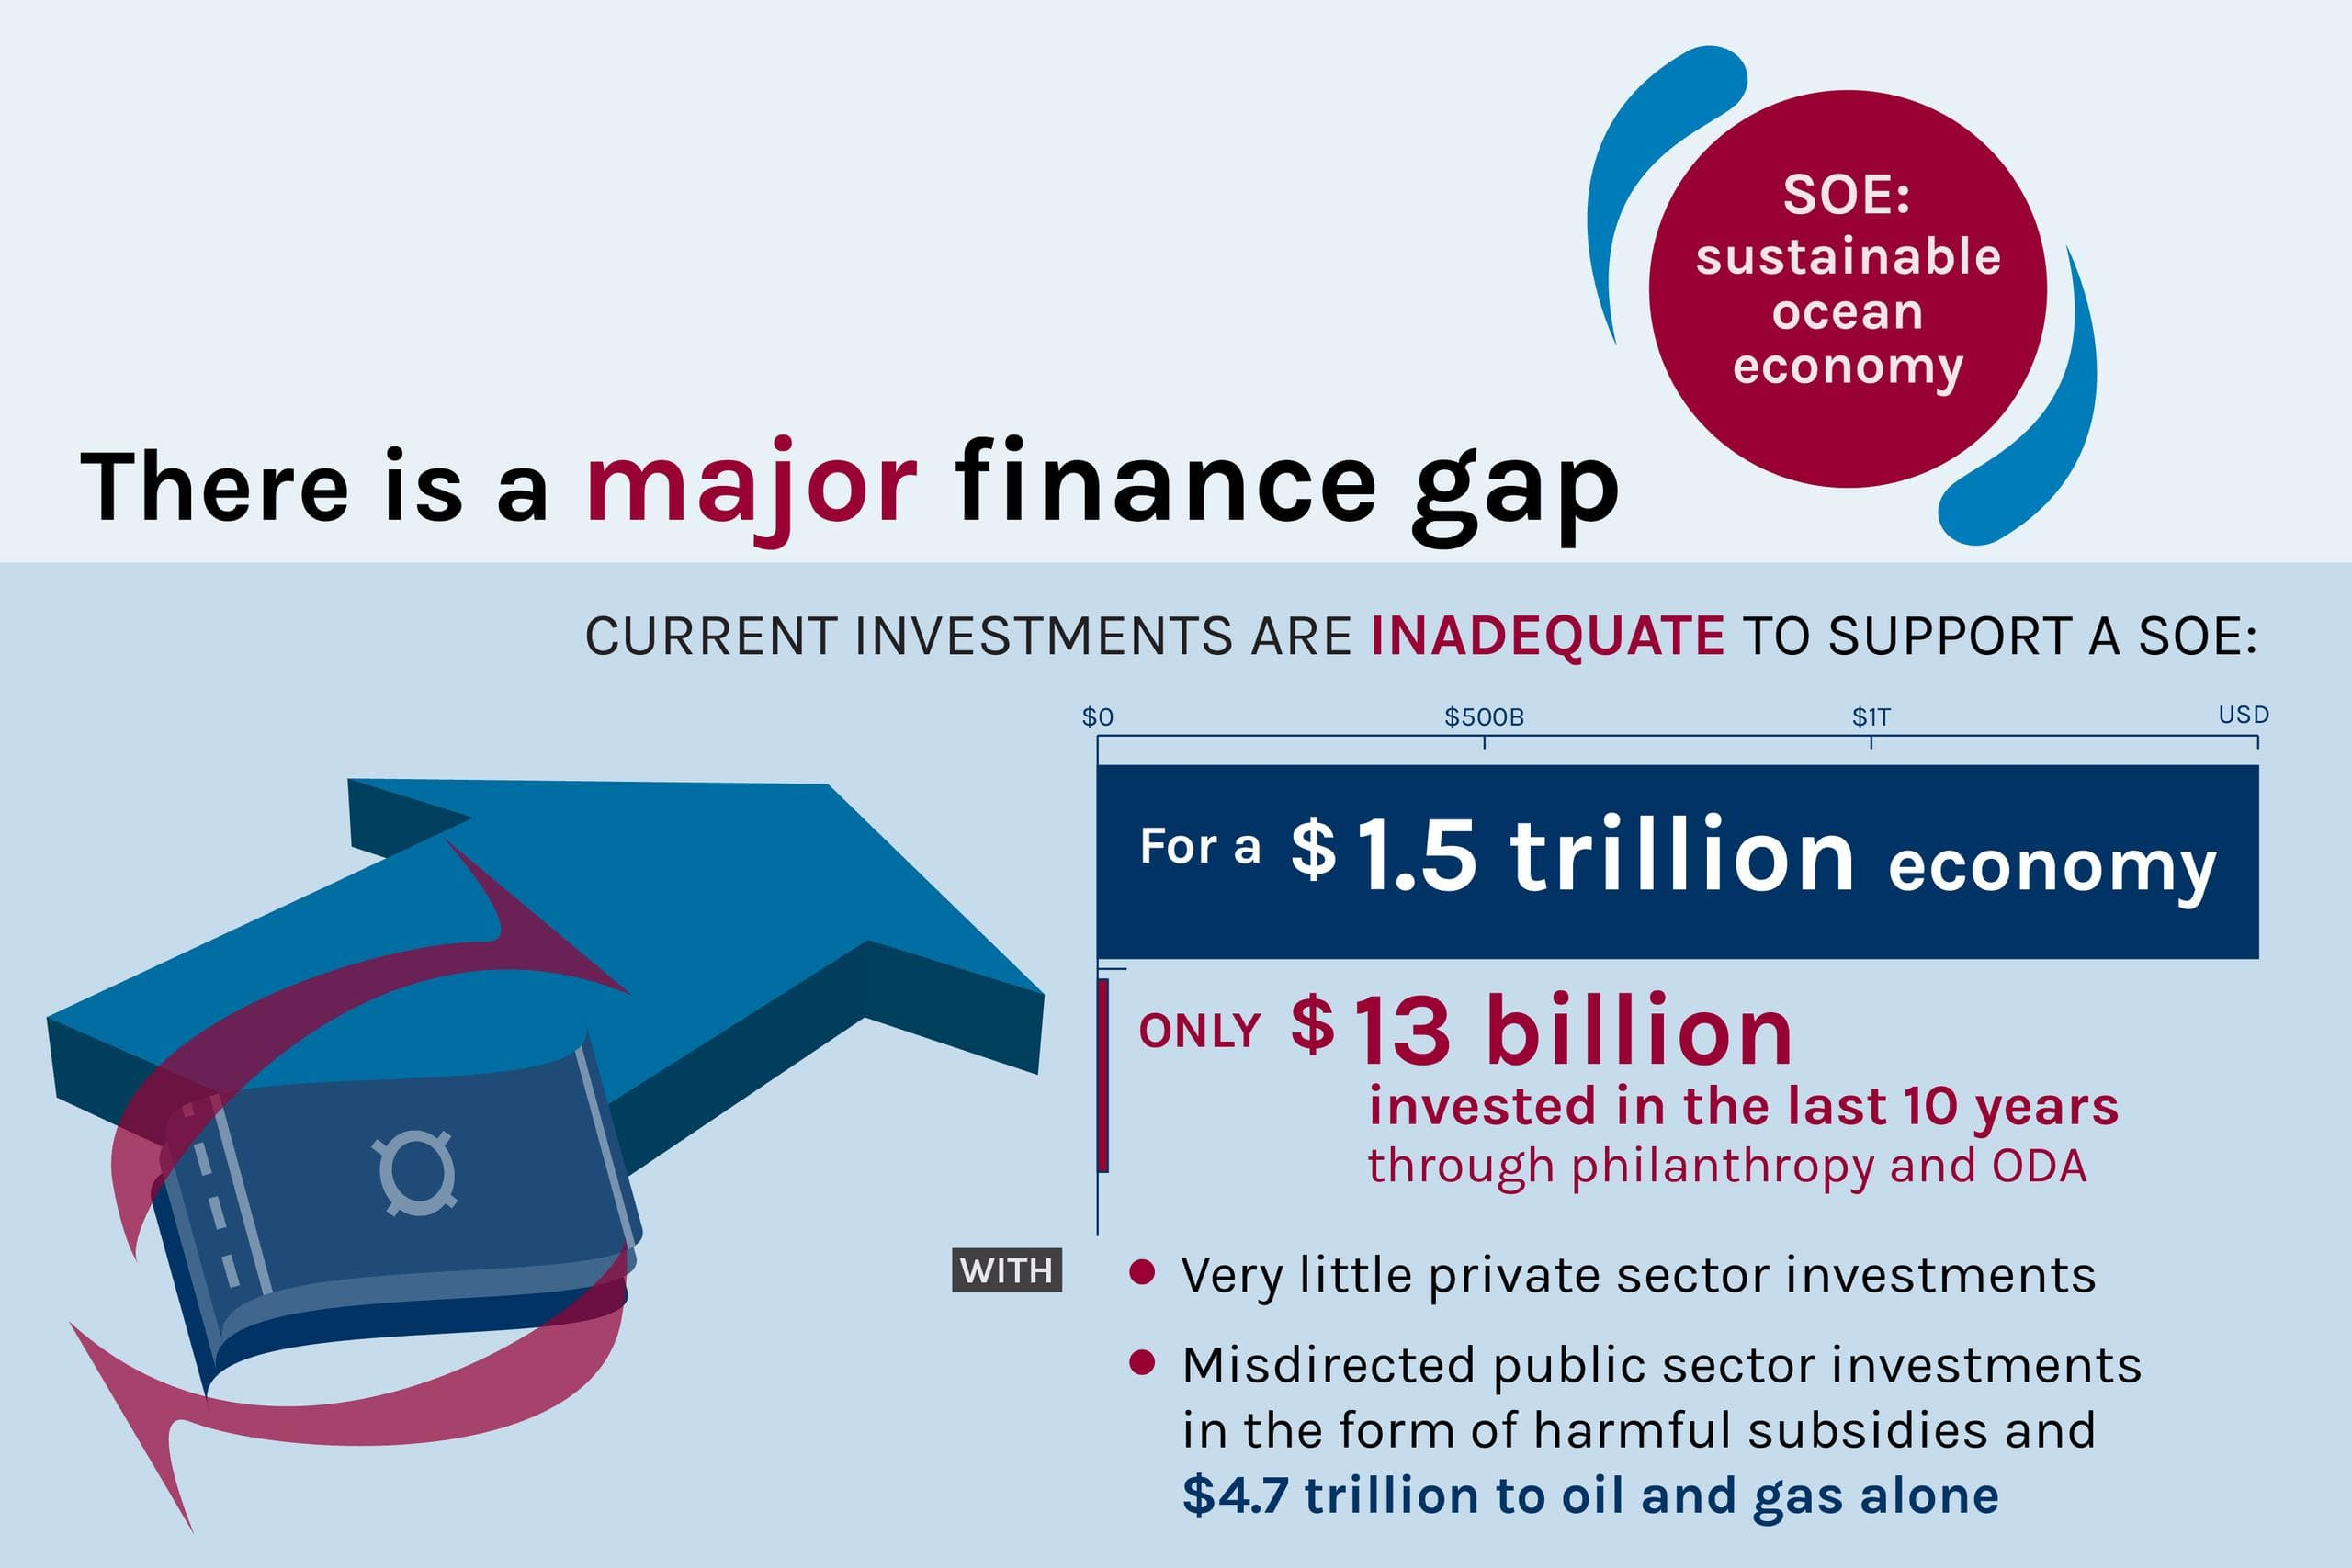 Figure: There is a major finance gap: current investments are inadequate to support a sustainable ocean economy (SOE).